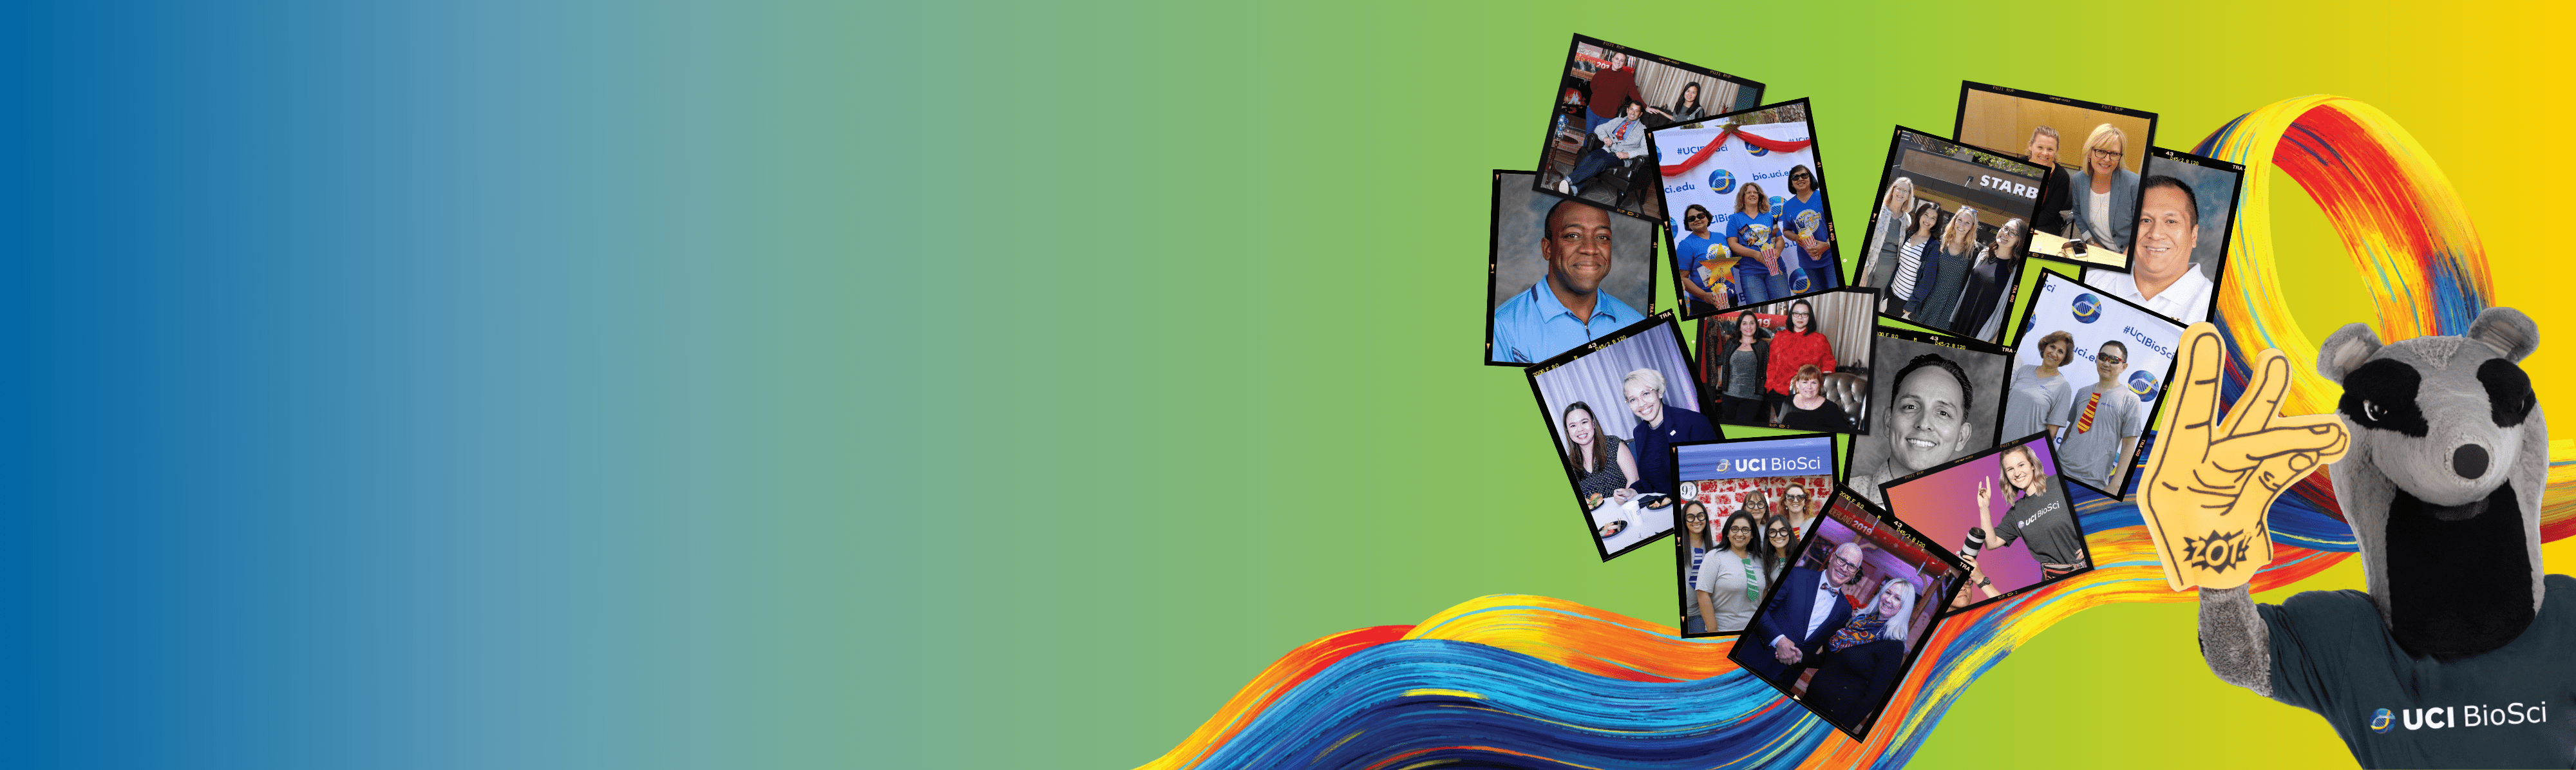 Biosci Staff collage with the anteater mascot in the bottom right corner all in front of a surge on a gradient blue to yellow background